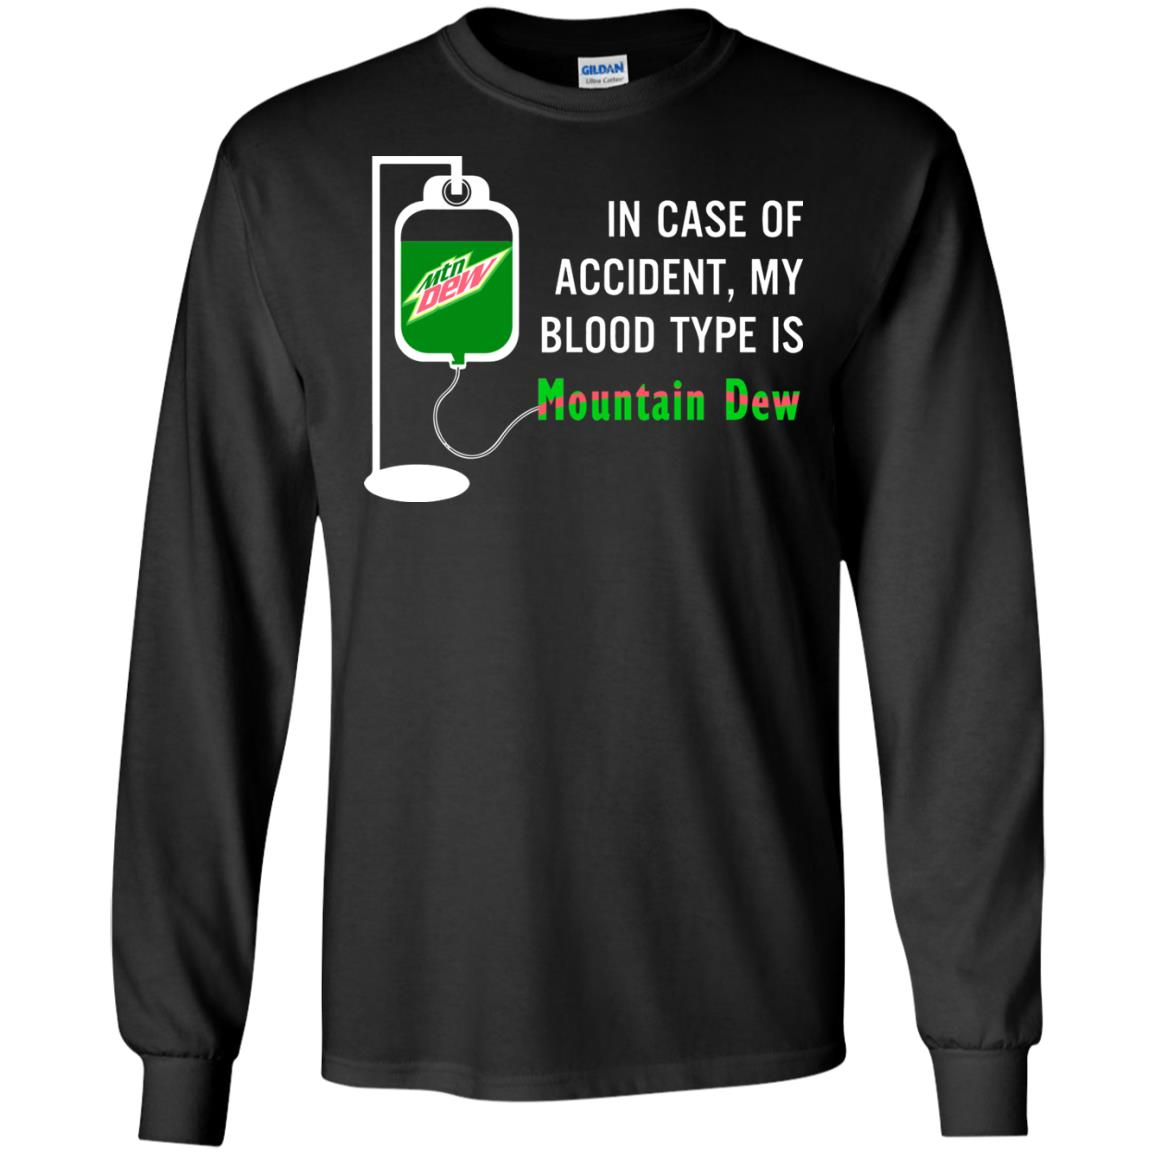 image 494 - In Case Of Accident My Blood Type Is Mountain Dew Shirt